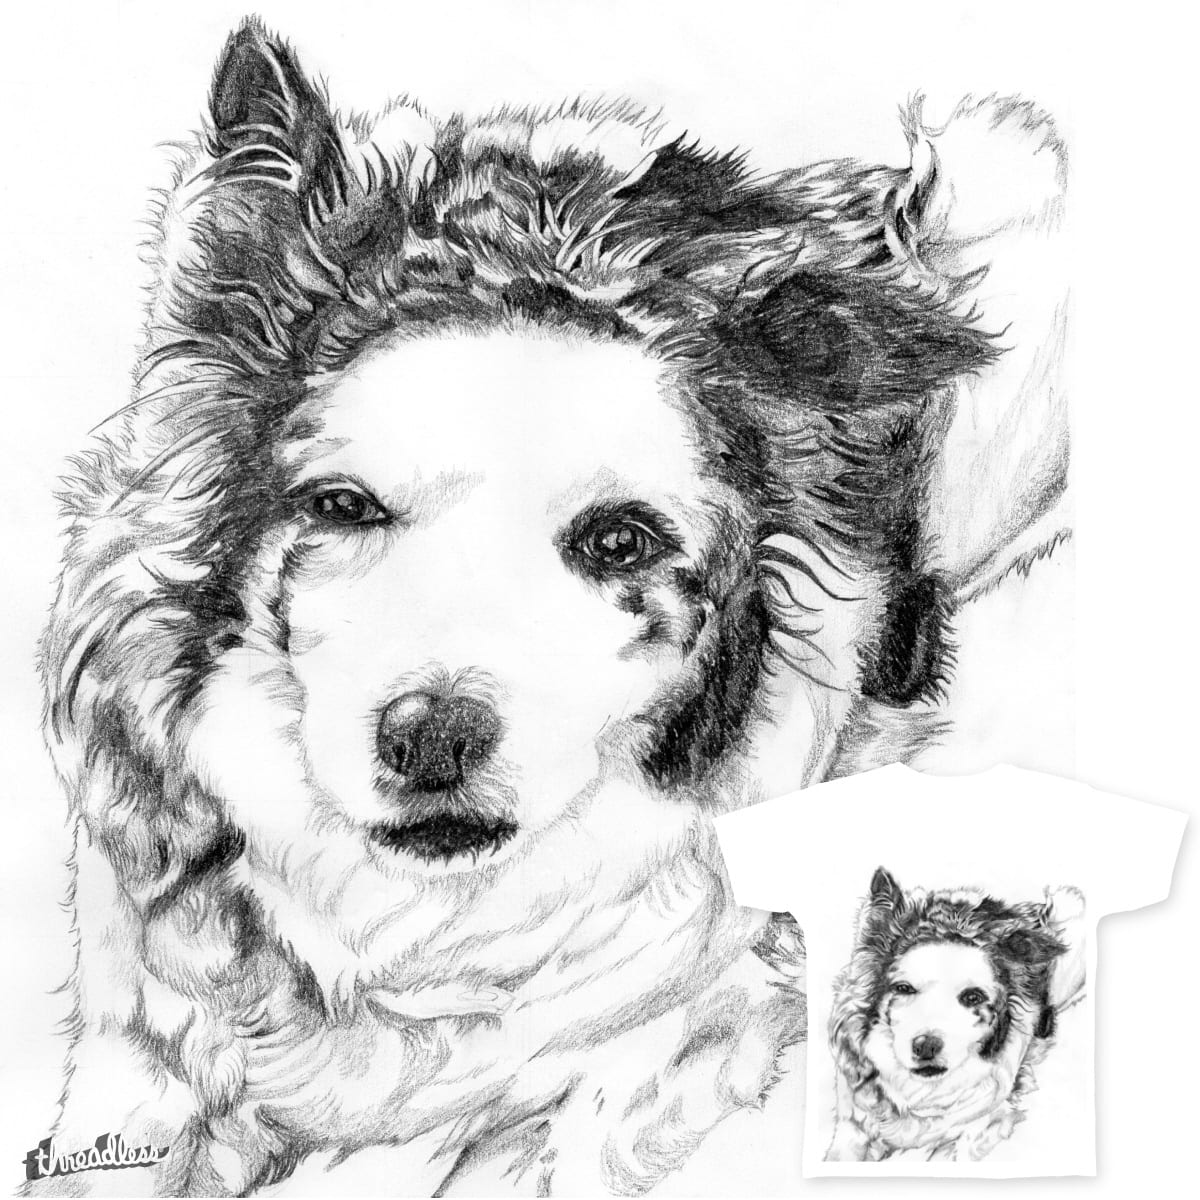 Collie by Nmaiklem on Threadless